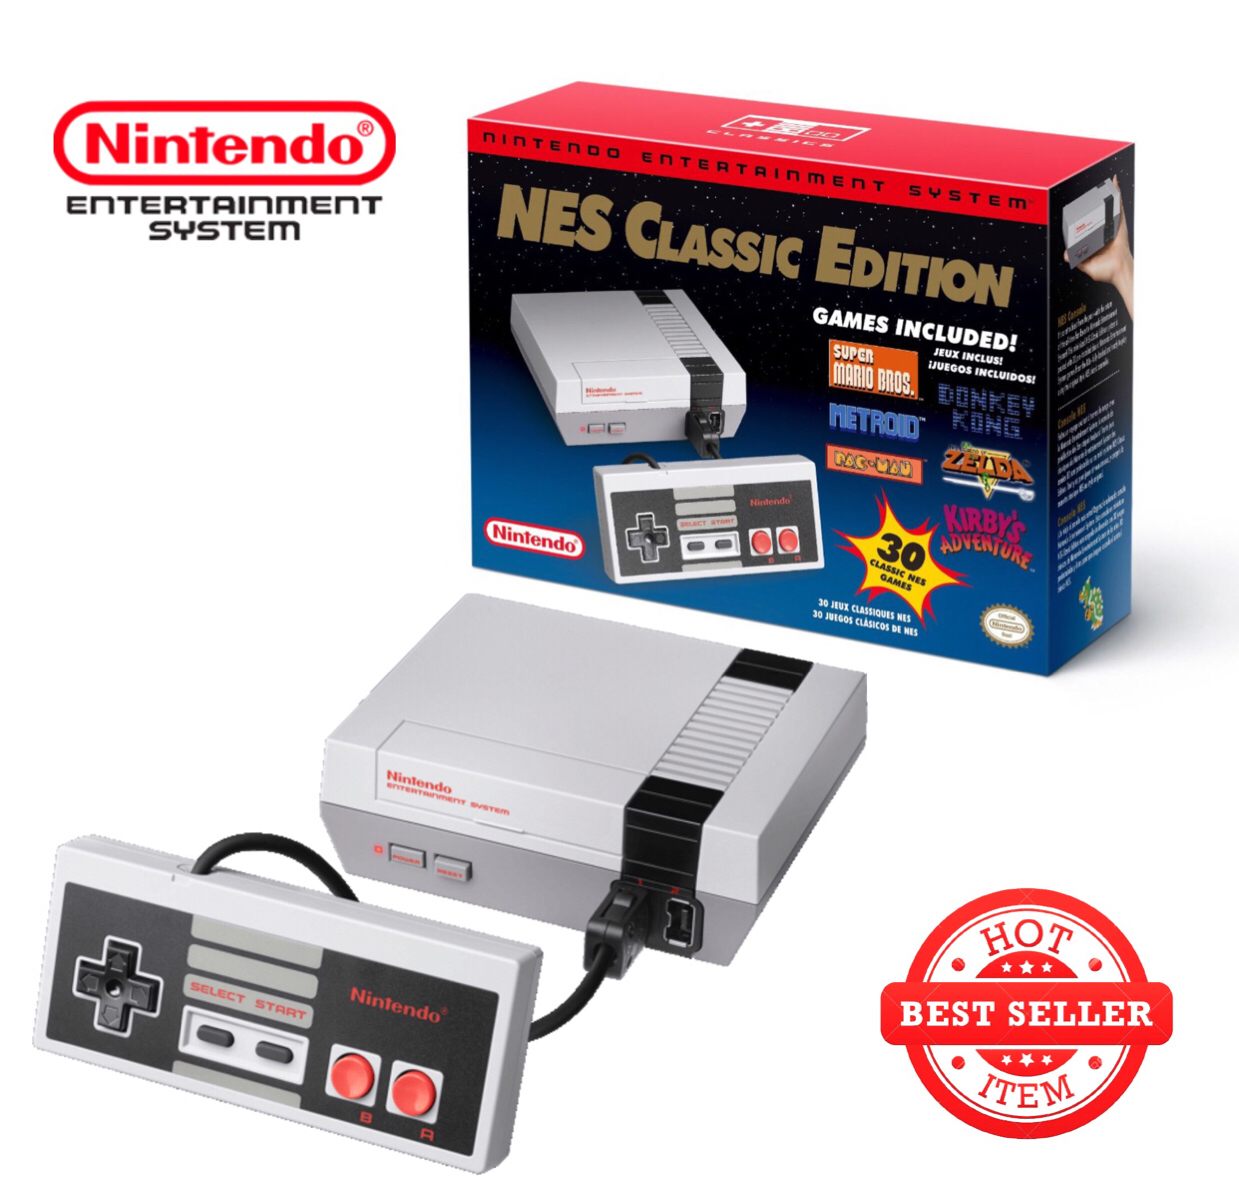 Nintendo NES Classic Edition - Mini Console with 30 Games!